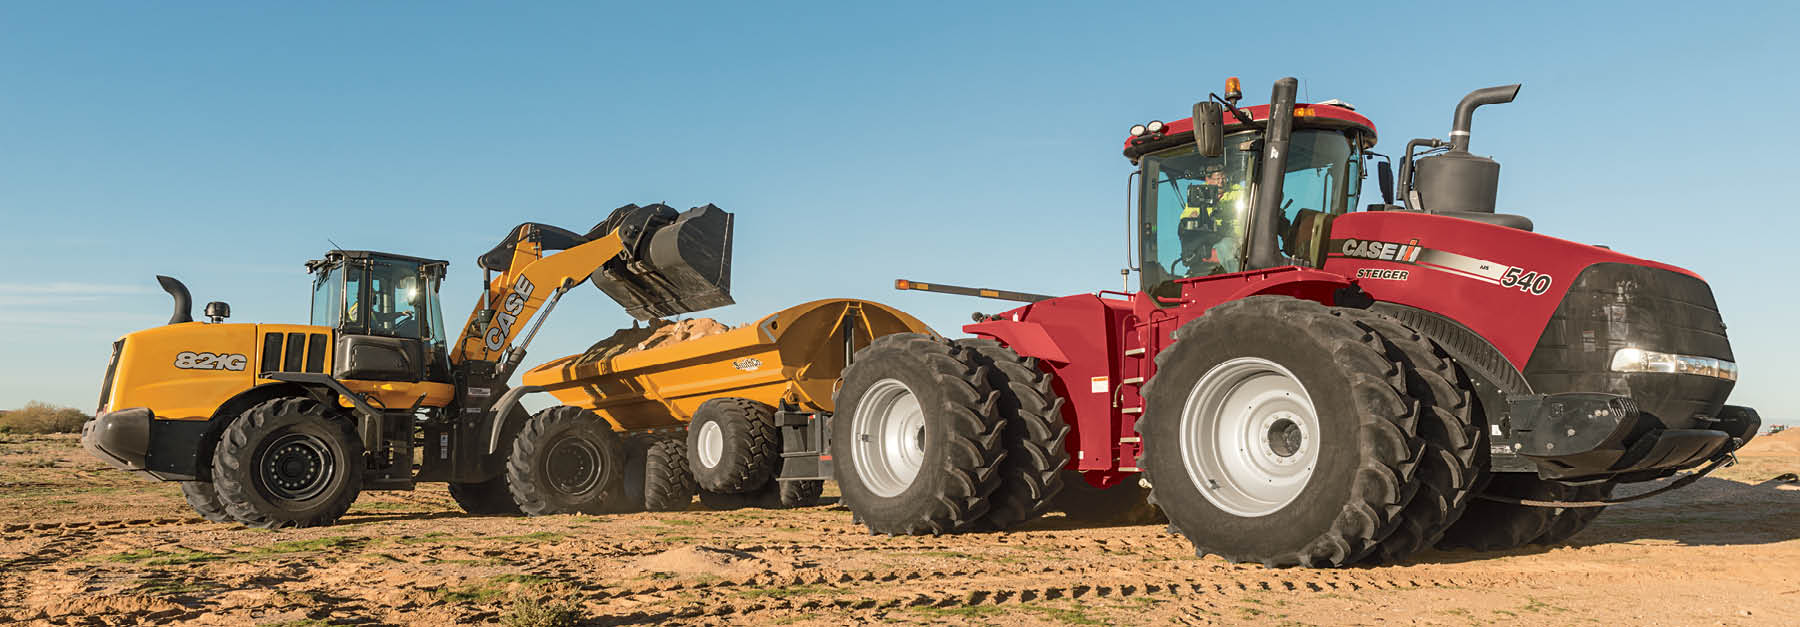 Case wheel loader and Case IH tractor